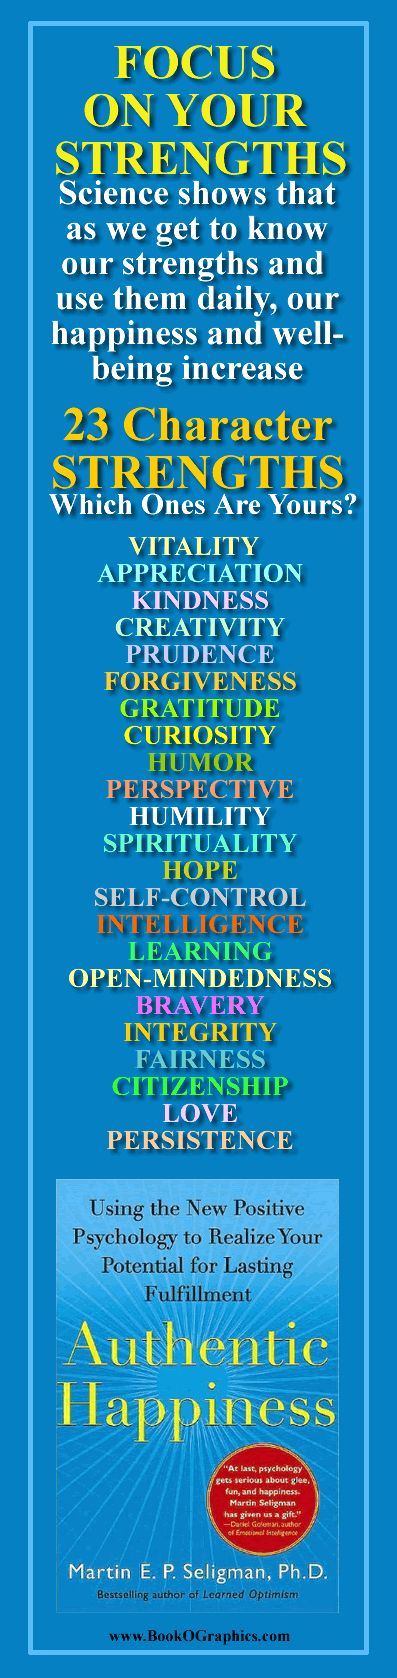 "Focus on Your Strengths - A BookOGraphic featuring the book ""Authentic Happiness"" by Martin Seligman, Ph.D"